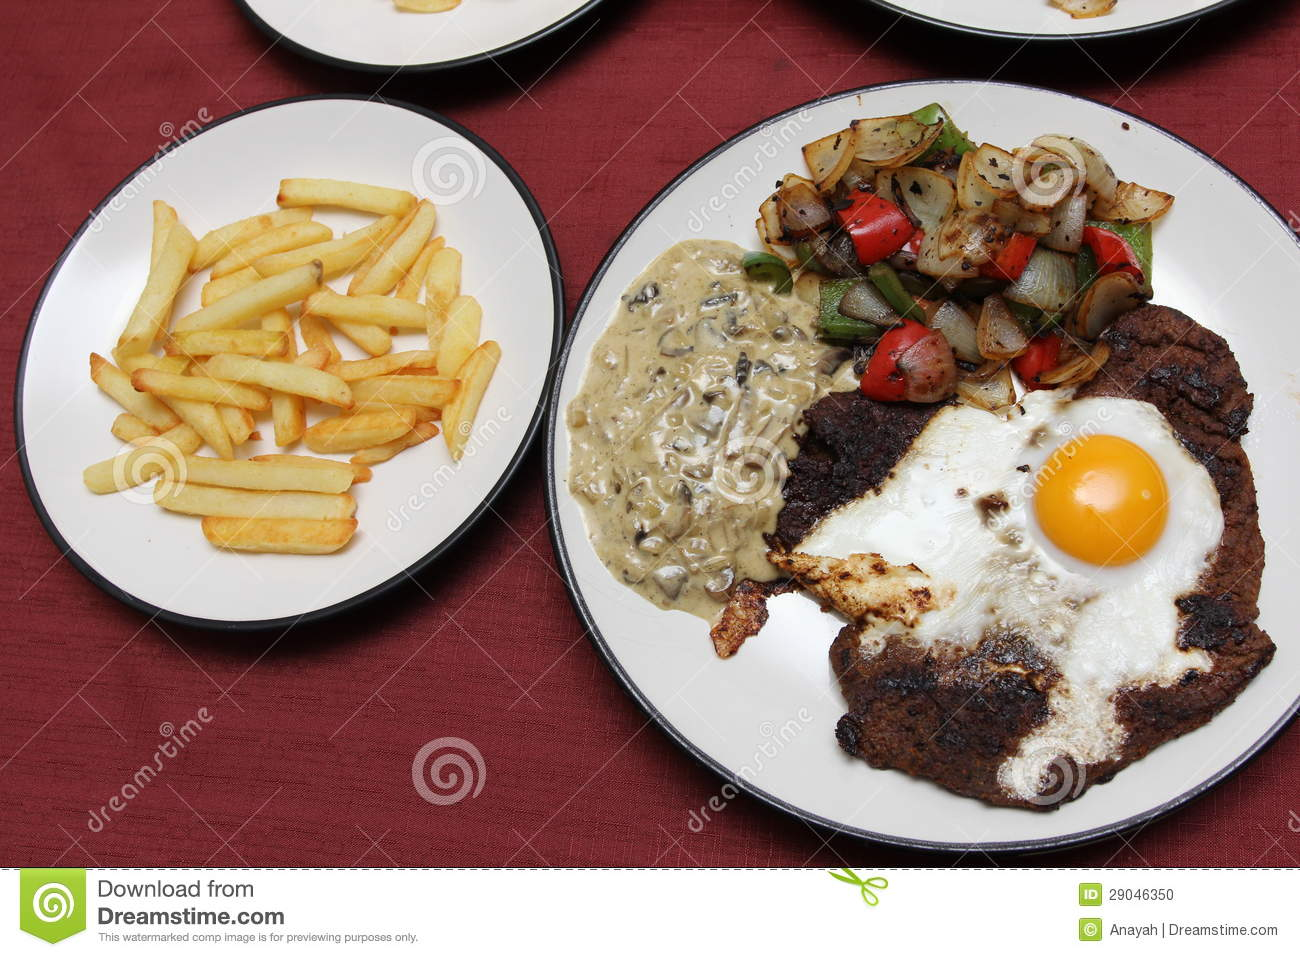 ... fried egg cooked over it, served with mushroom sauce, vegetables and